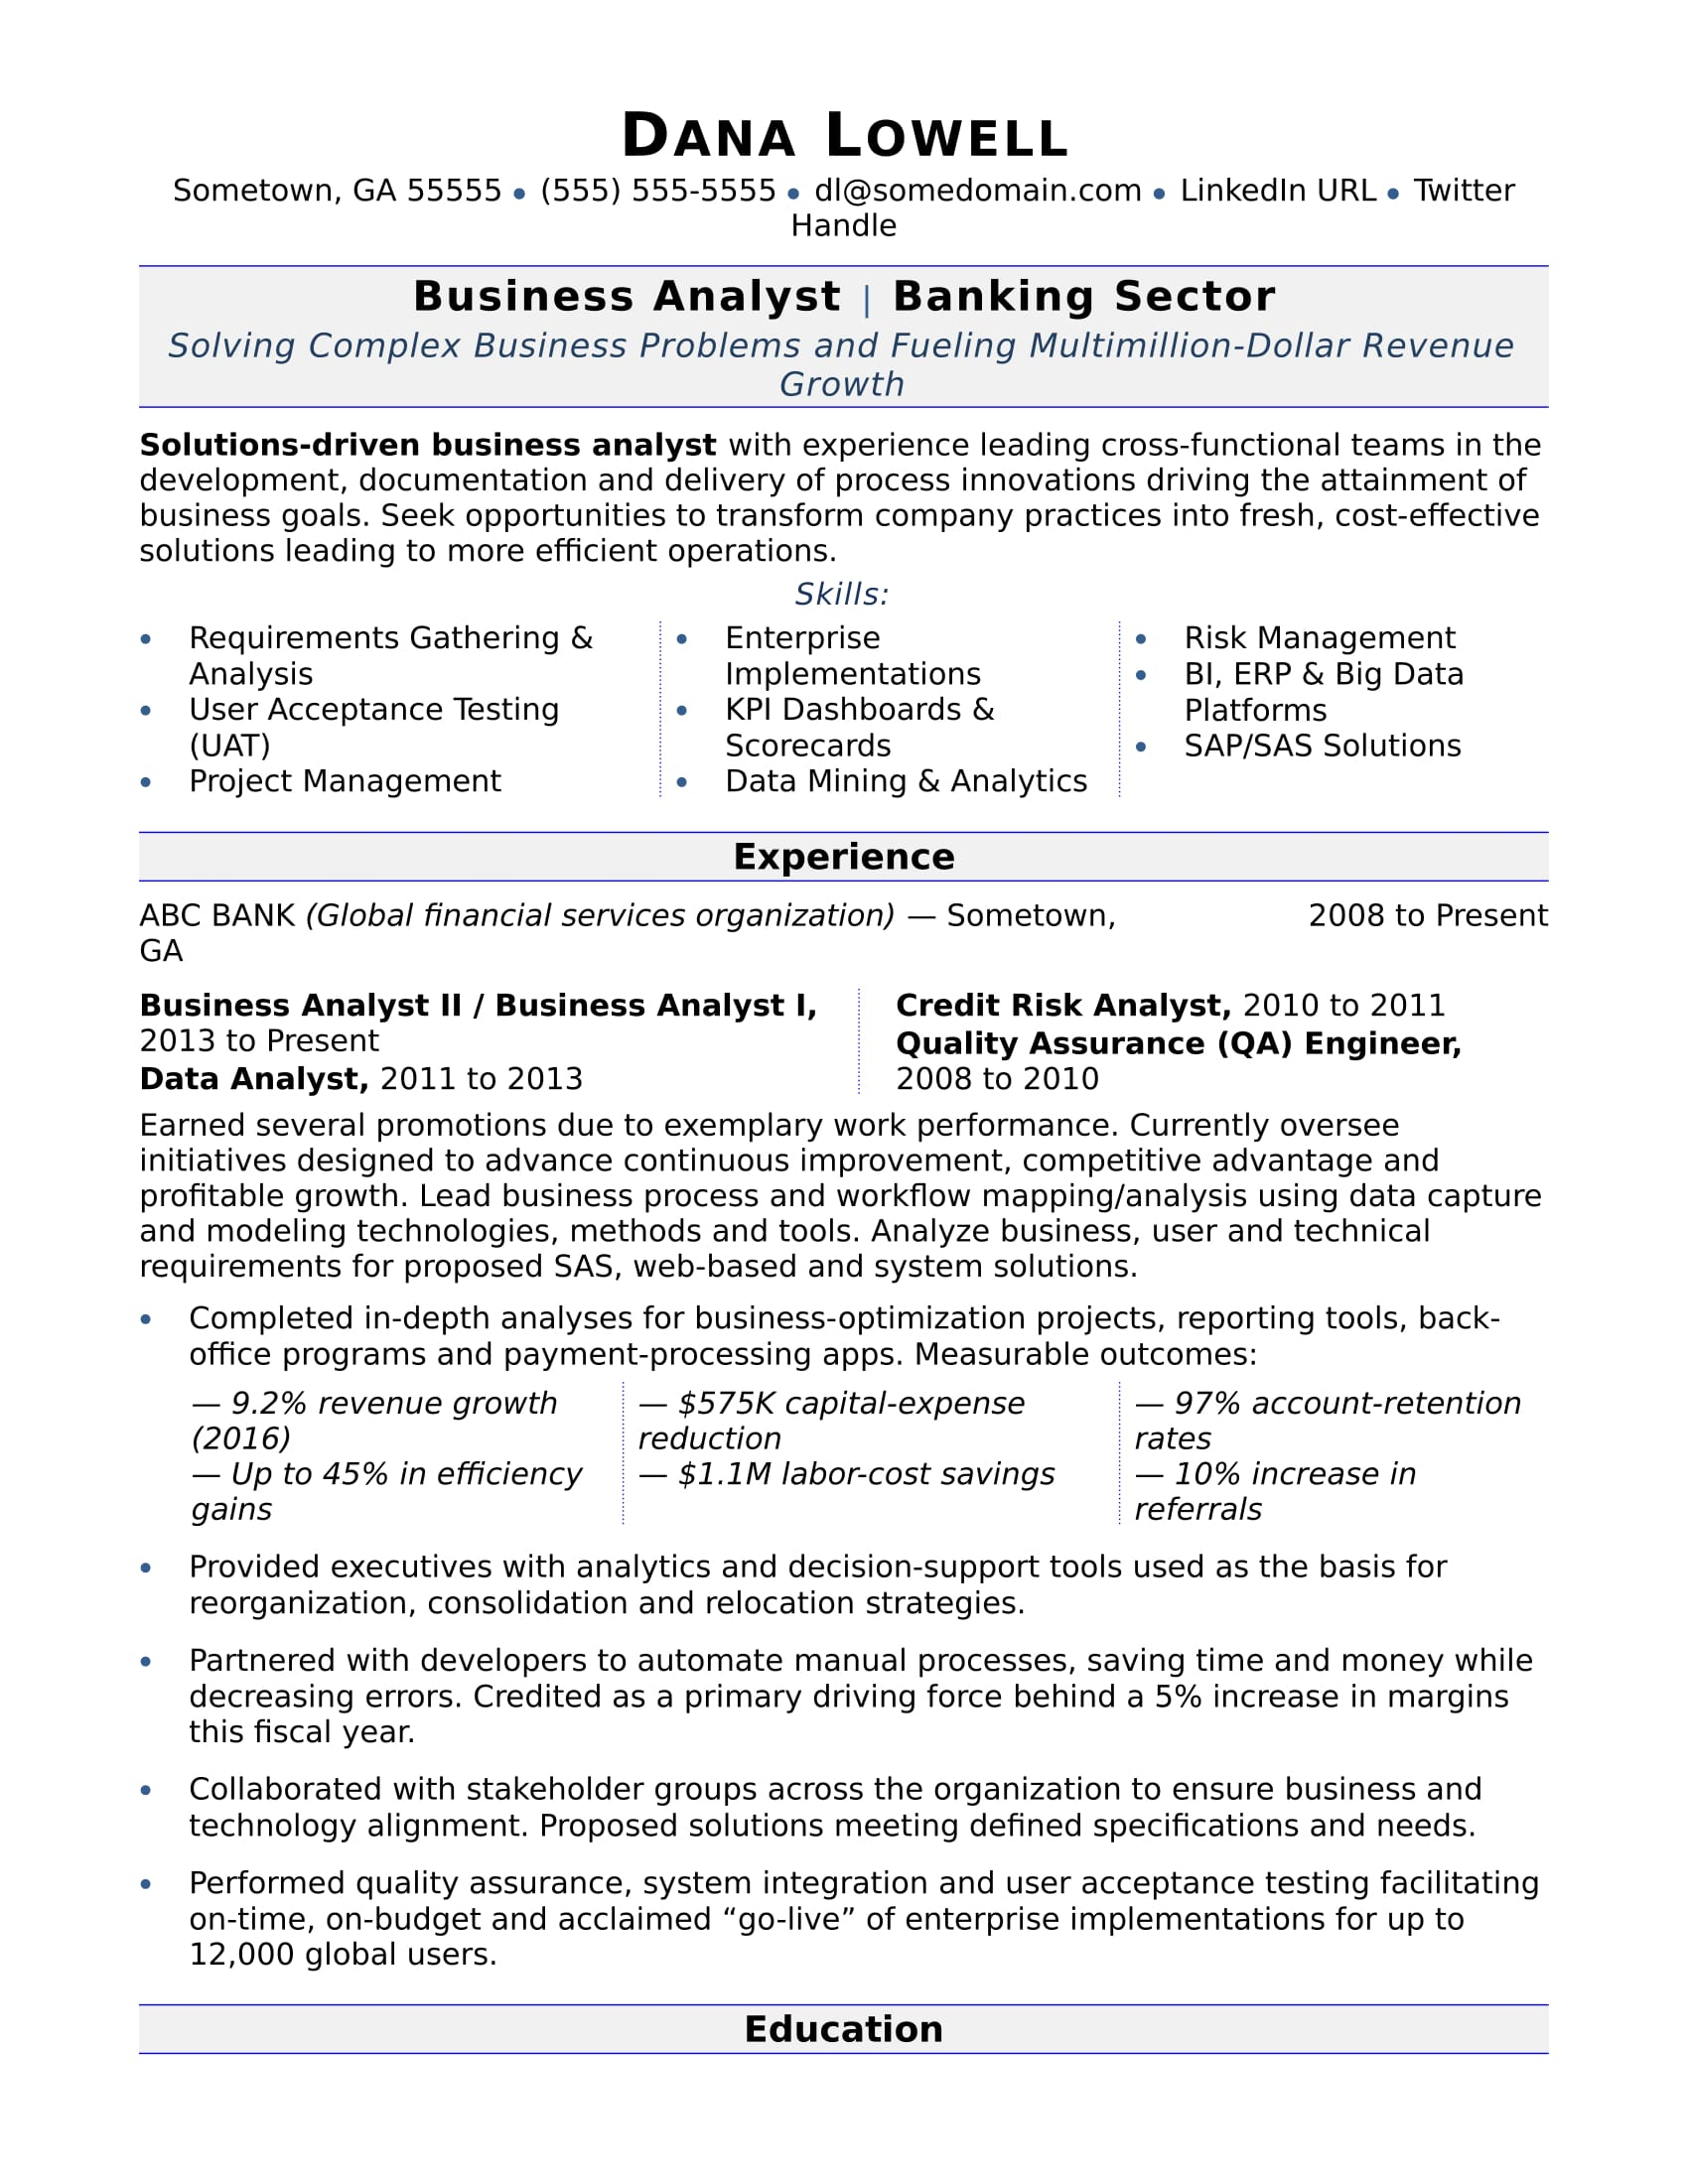 Entry Level Business Analyst Resume With No Experience Business Analyst Resume Sample Monster